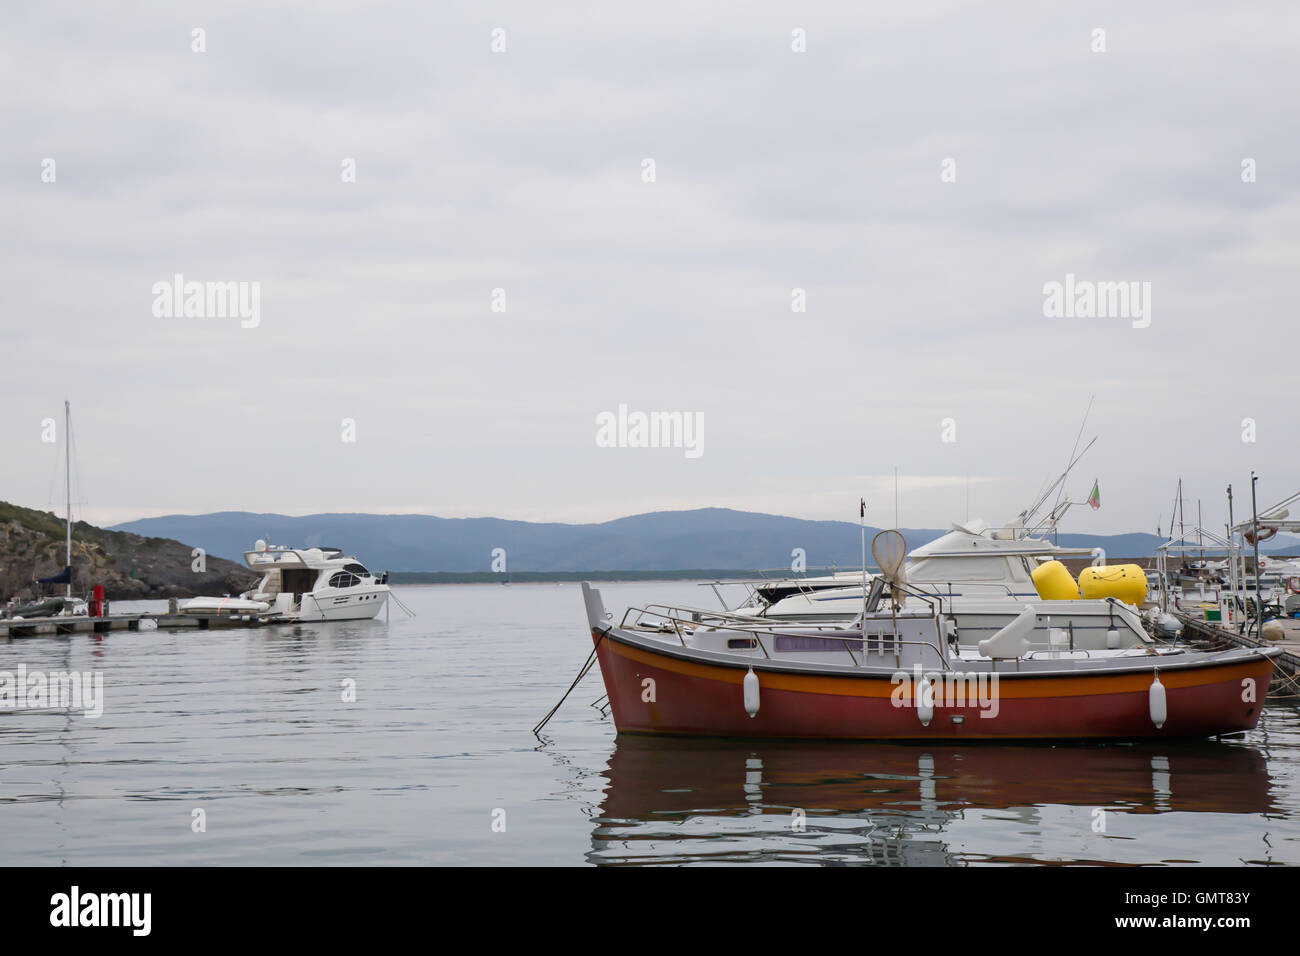 Boats moored at the port on a cloudy day Stock Photo